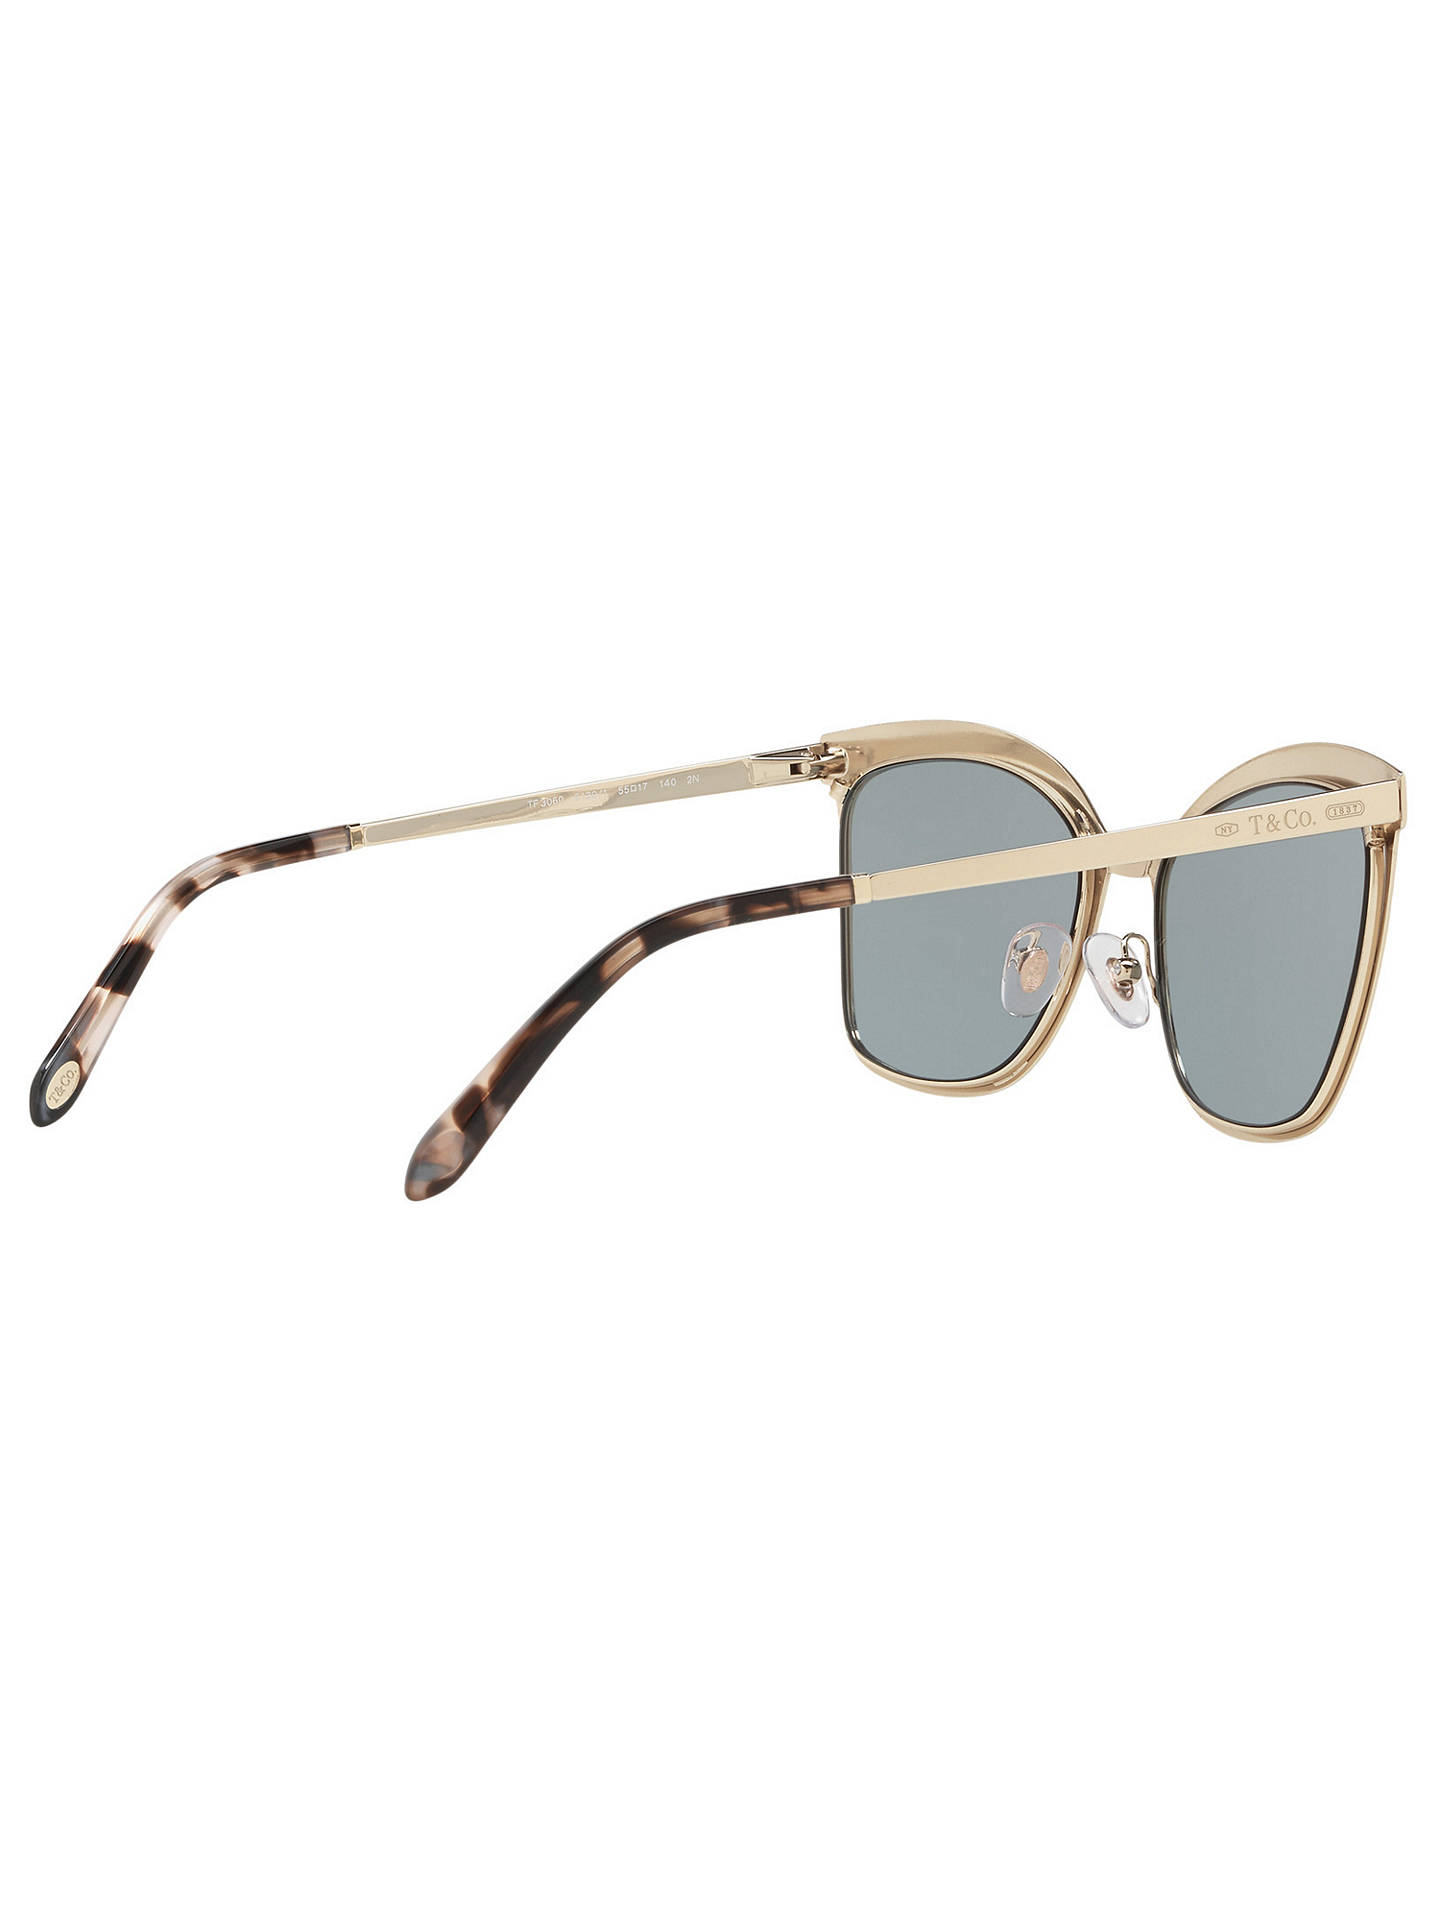 e400861b241d ... Buy Tiffany & Co TF3060 Square Sunglasses, Gold/Grey Online at  johnlewis.com